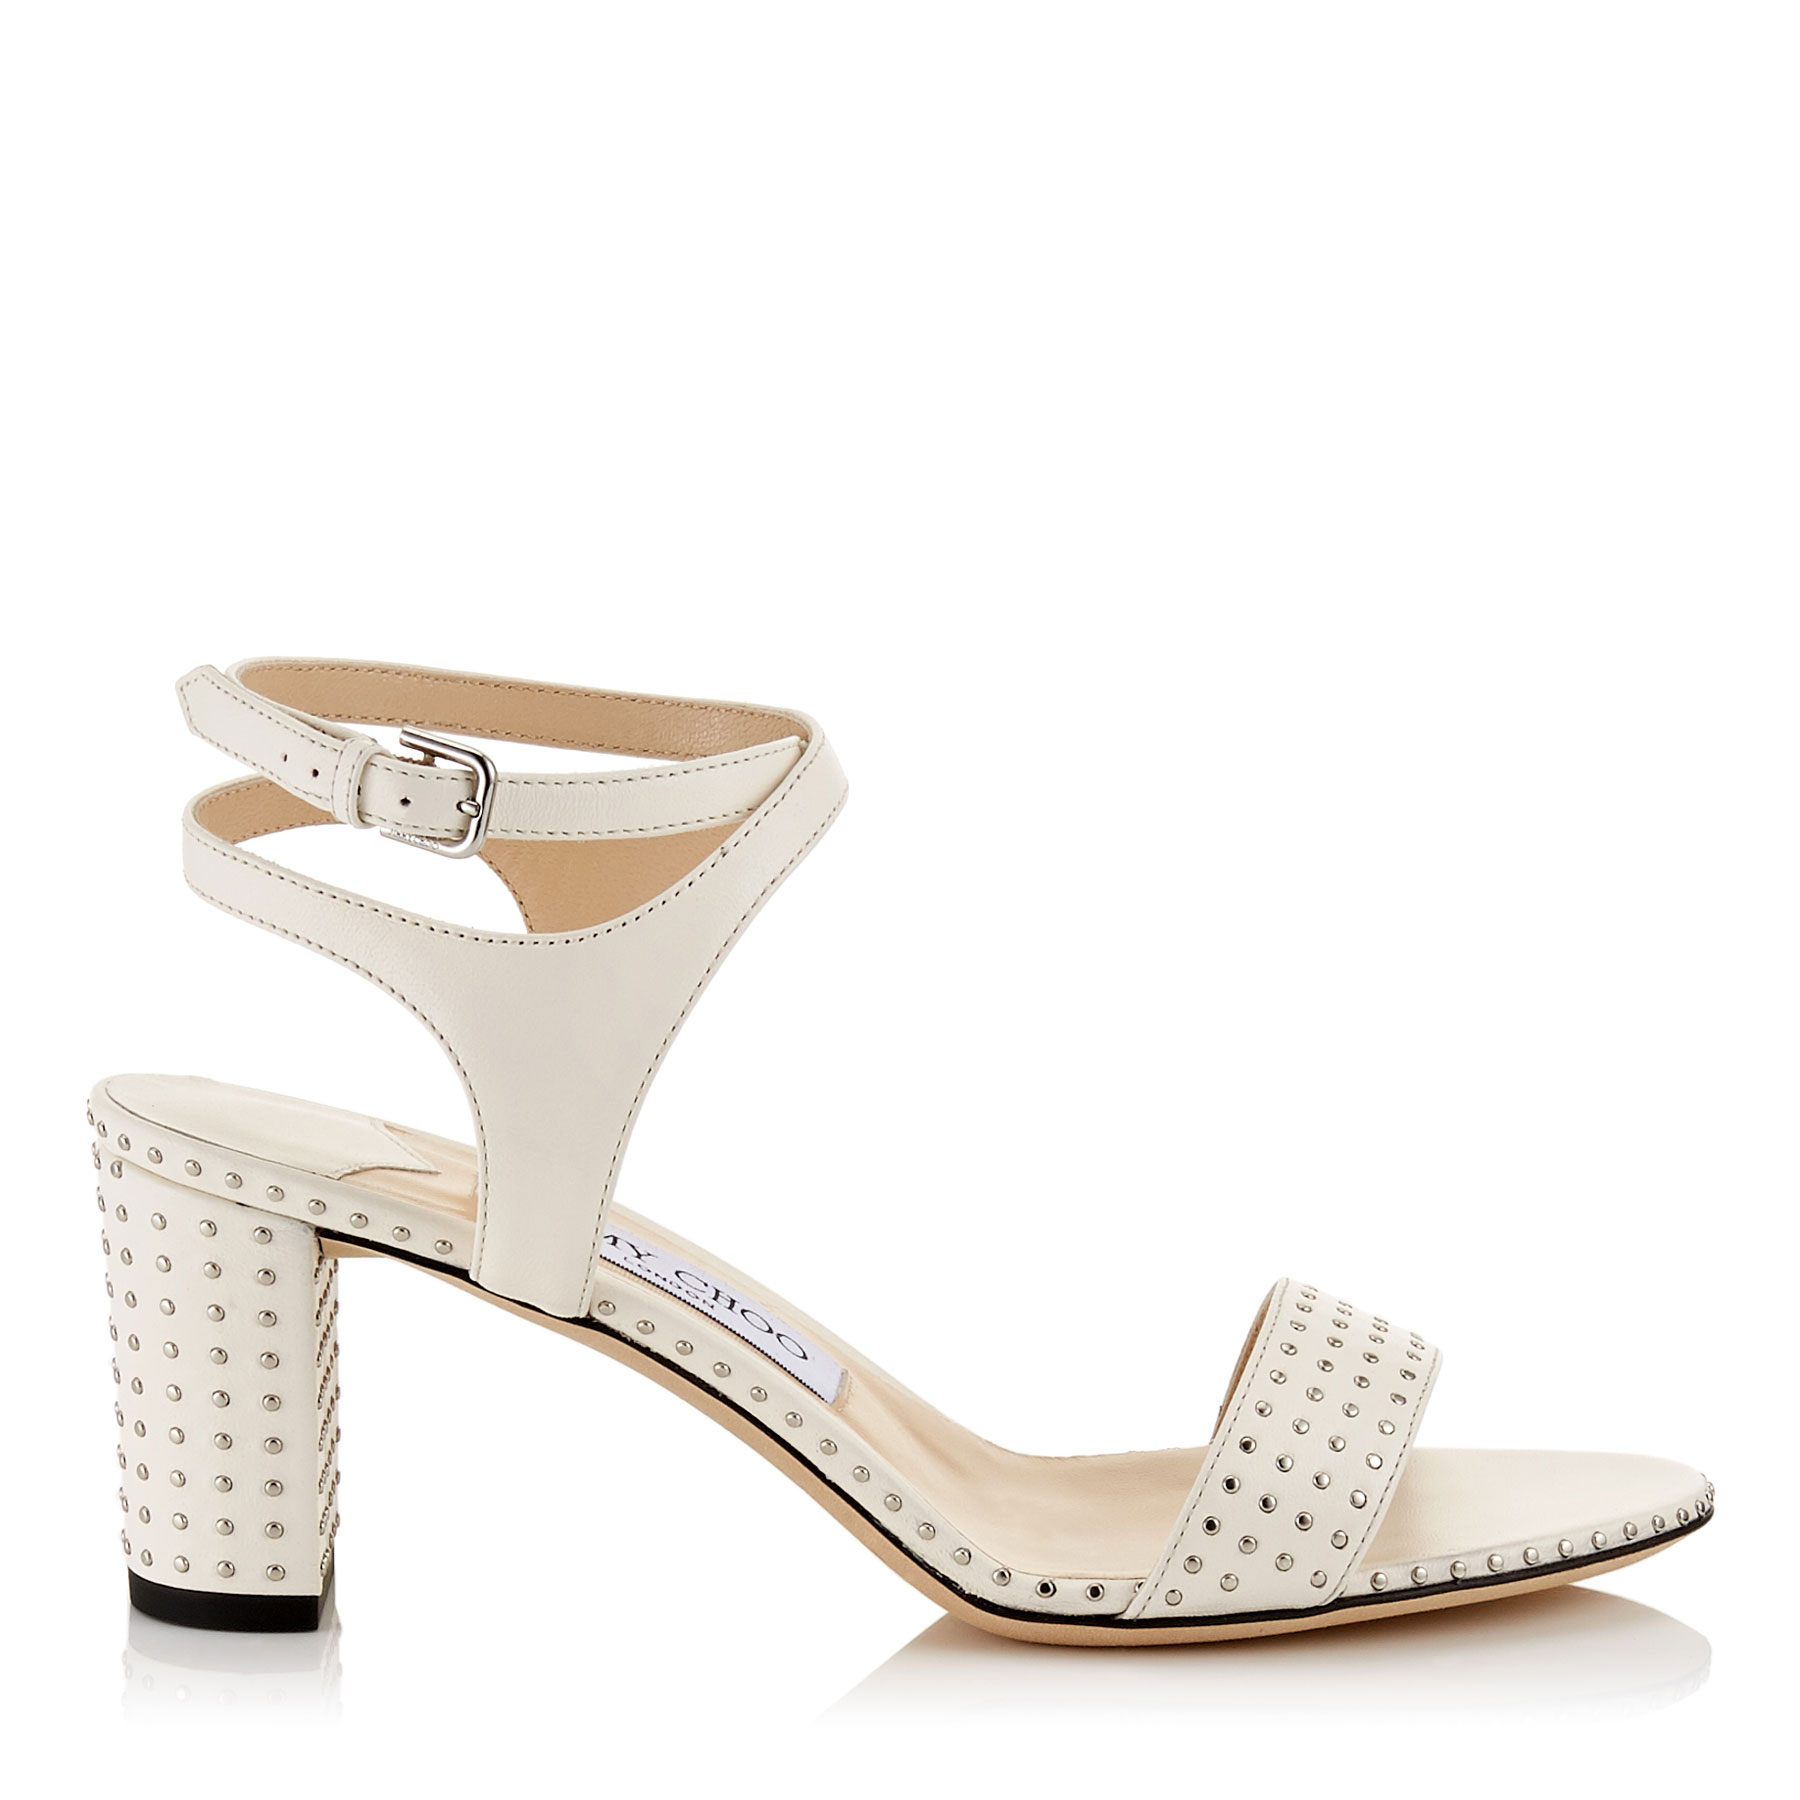 MARINE 65 Chalk Nappa Leather Sandals with Silver Micro Studs by Jimmy Choo